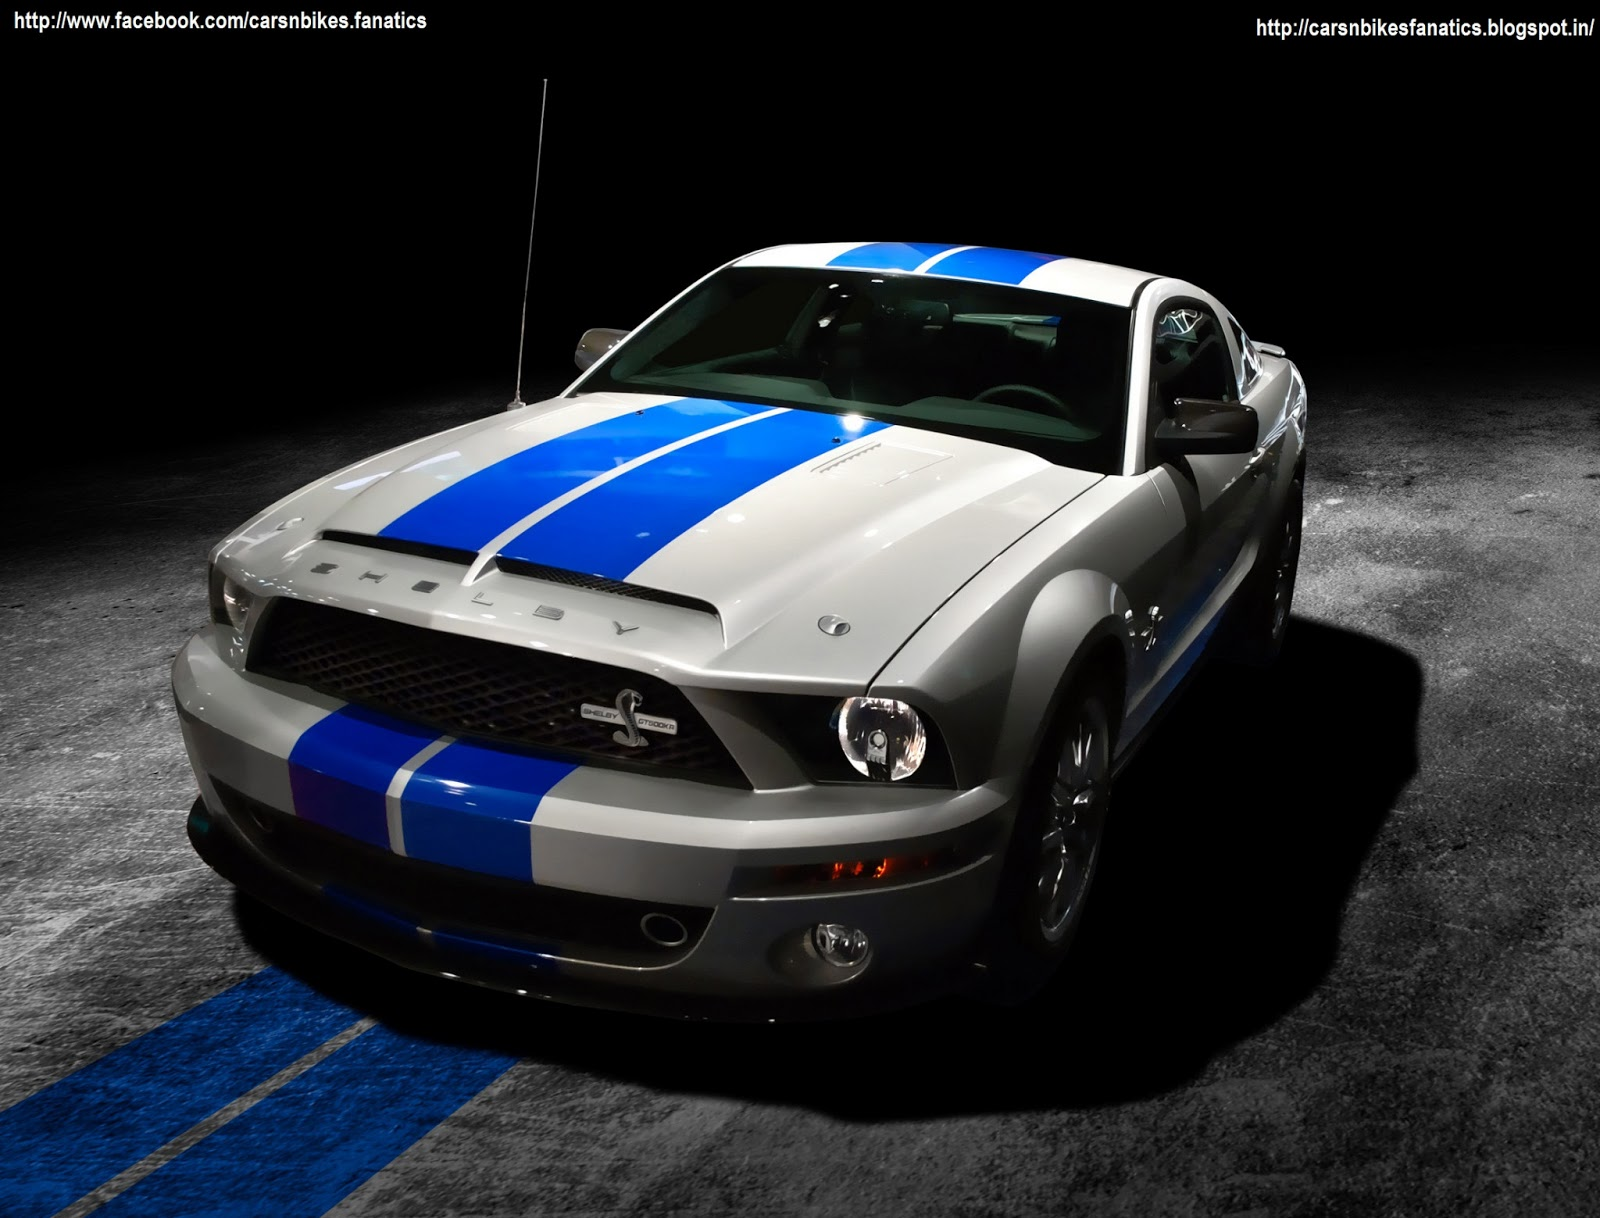 car bike fanatics muscle car ford mustang wallpapers. Black Bedroom Furniture Sets. Home Design Ideas